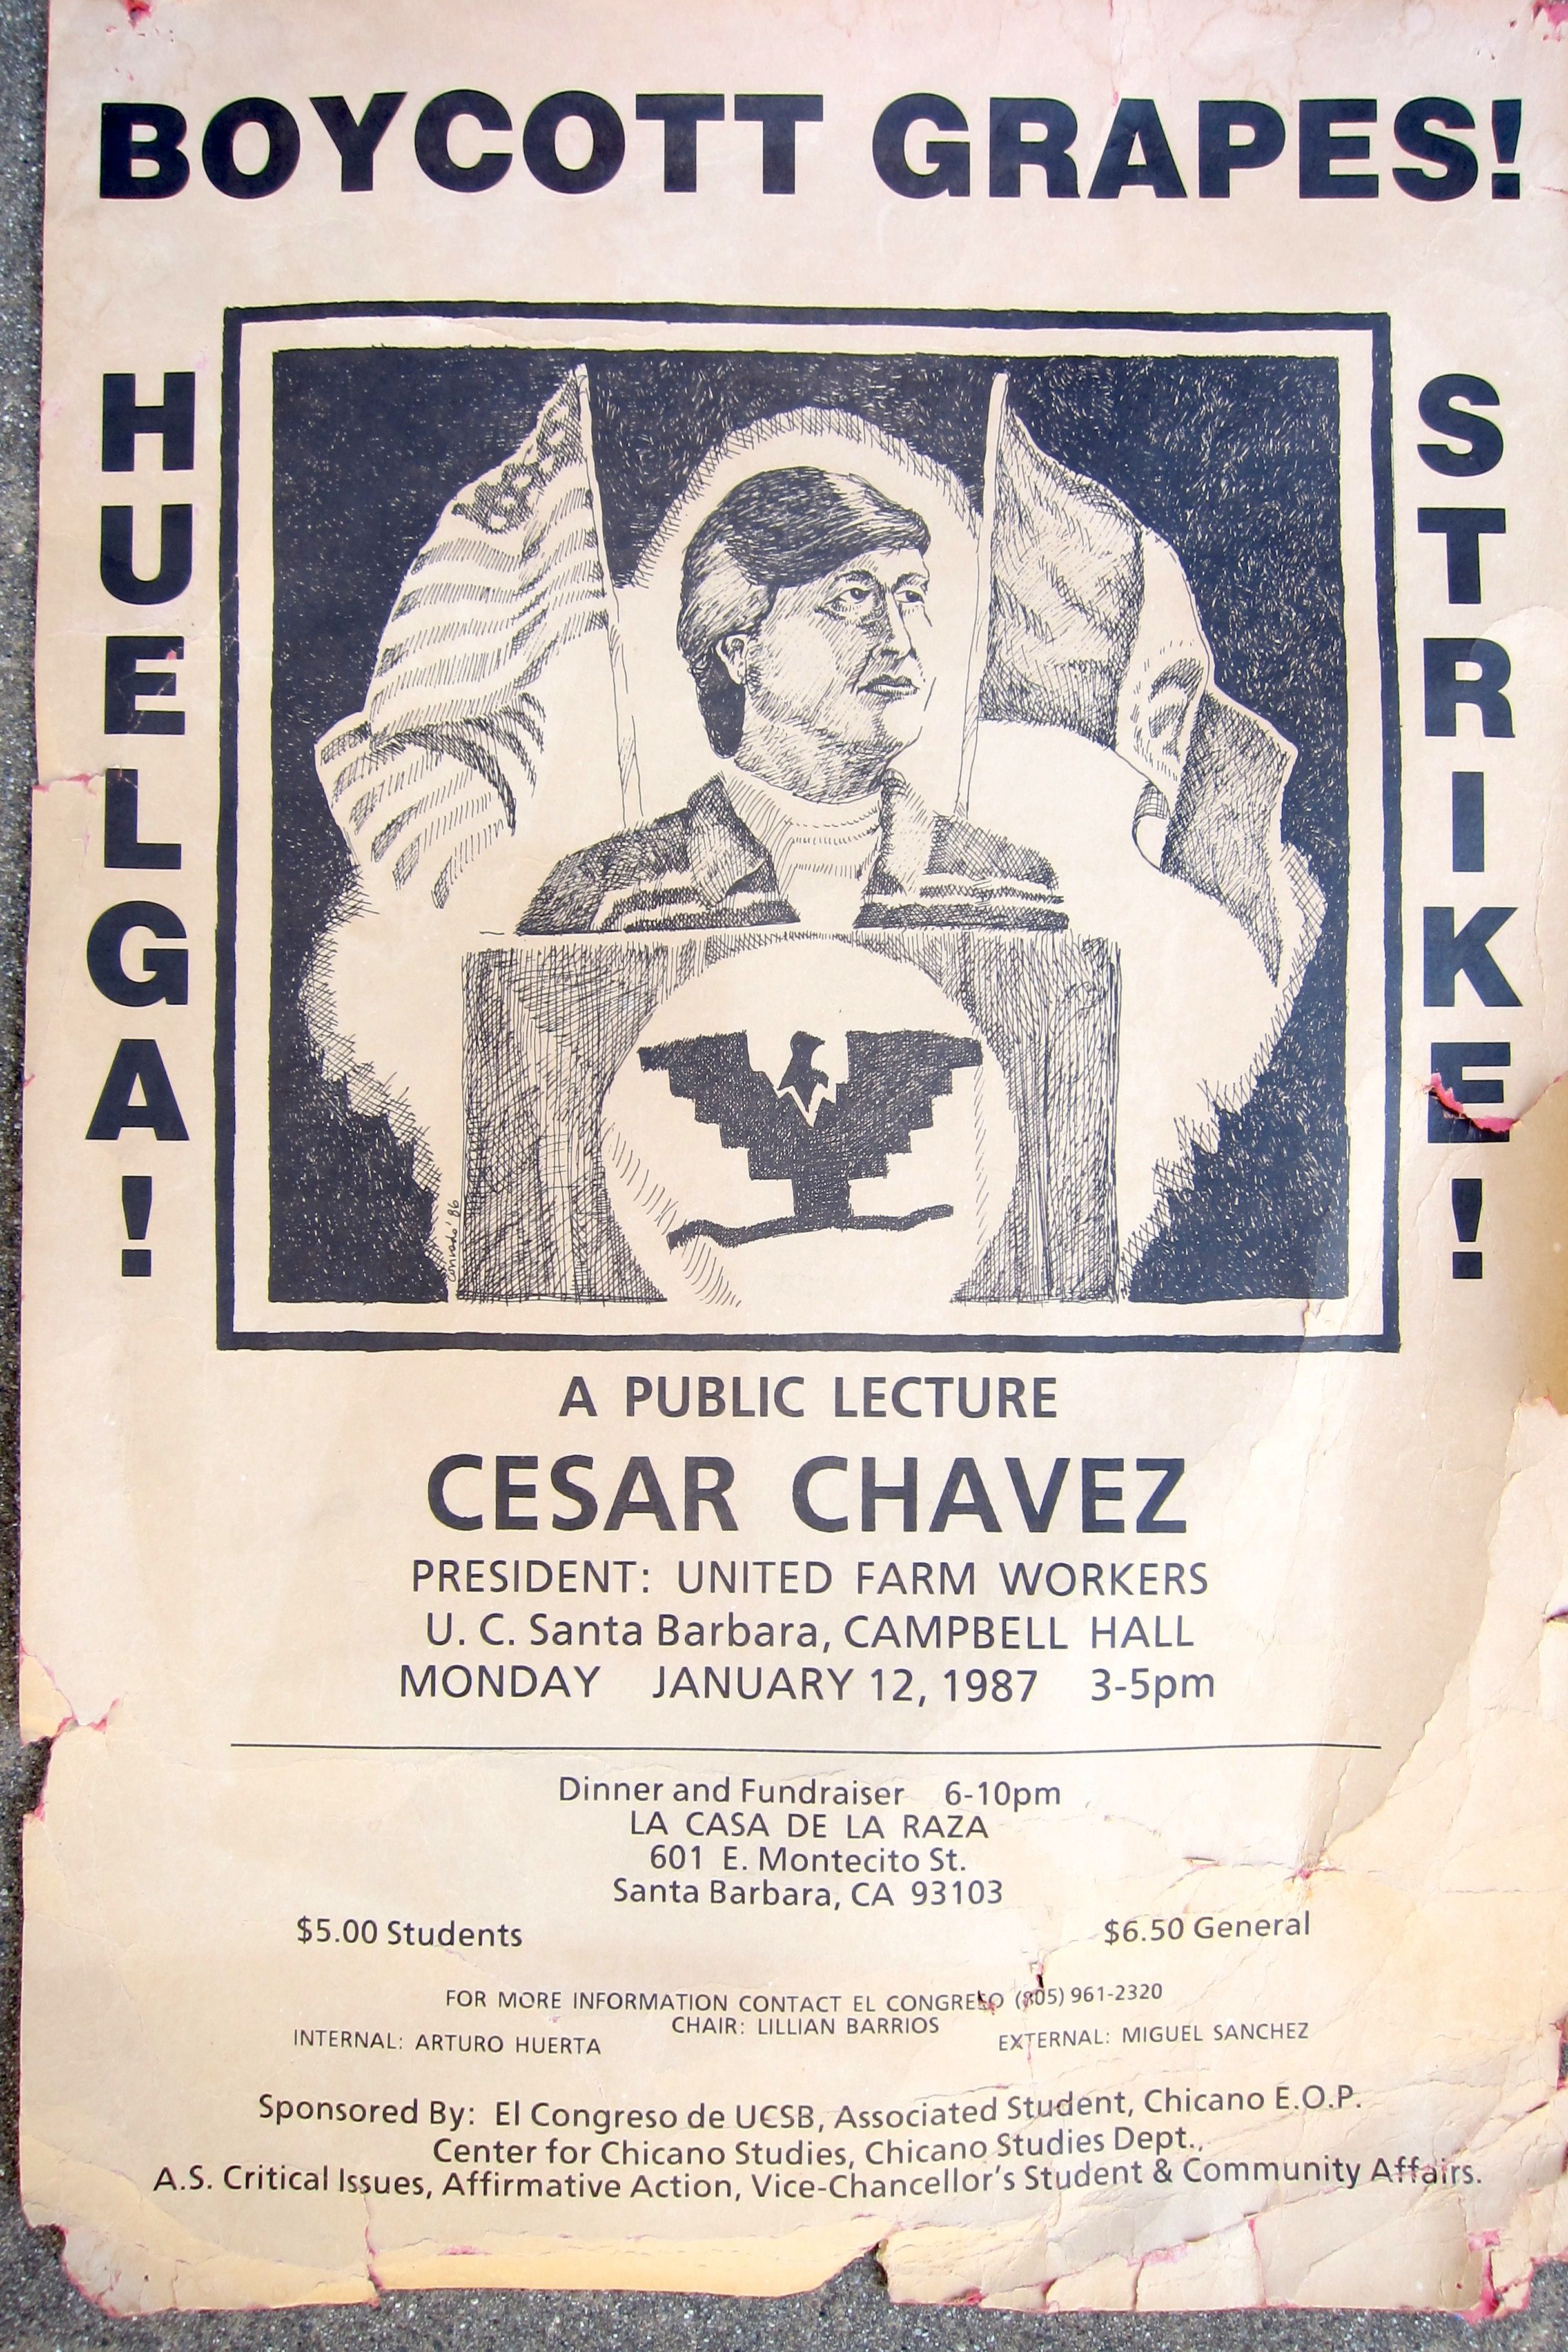 best images about cesar chavez diego luna 17 best images about cesar chavez diego luna chicano and 3rd grade reading